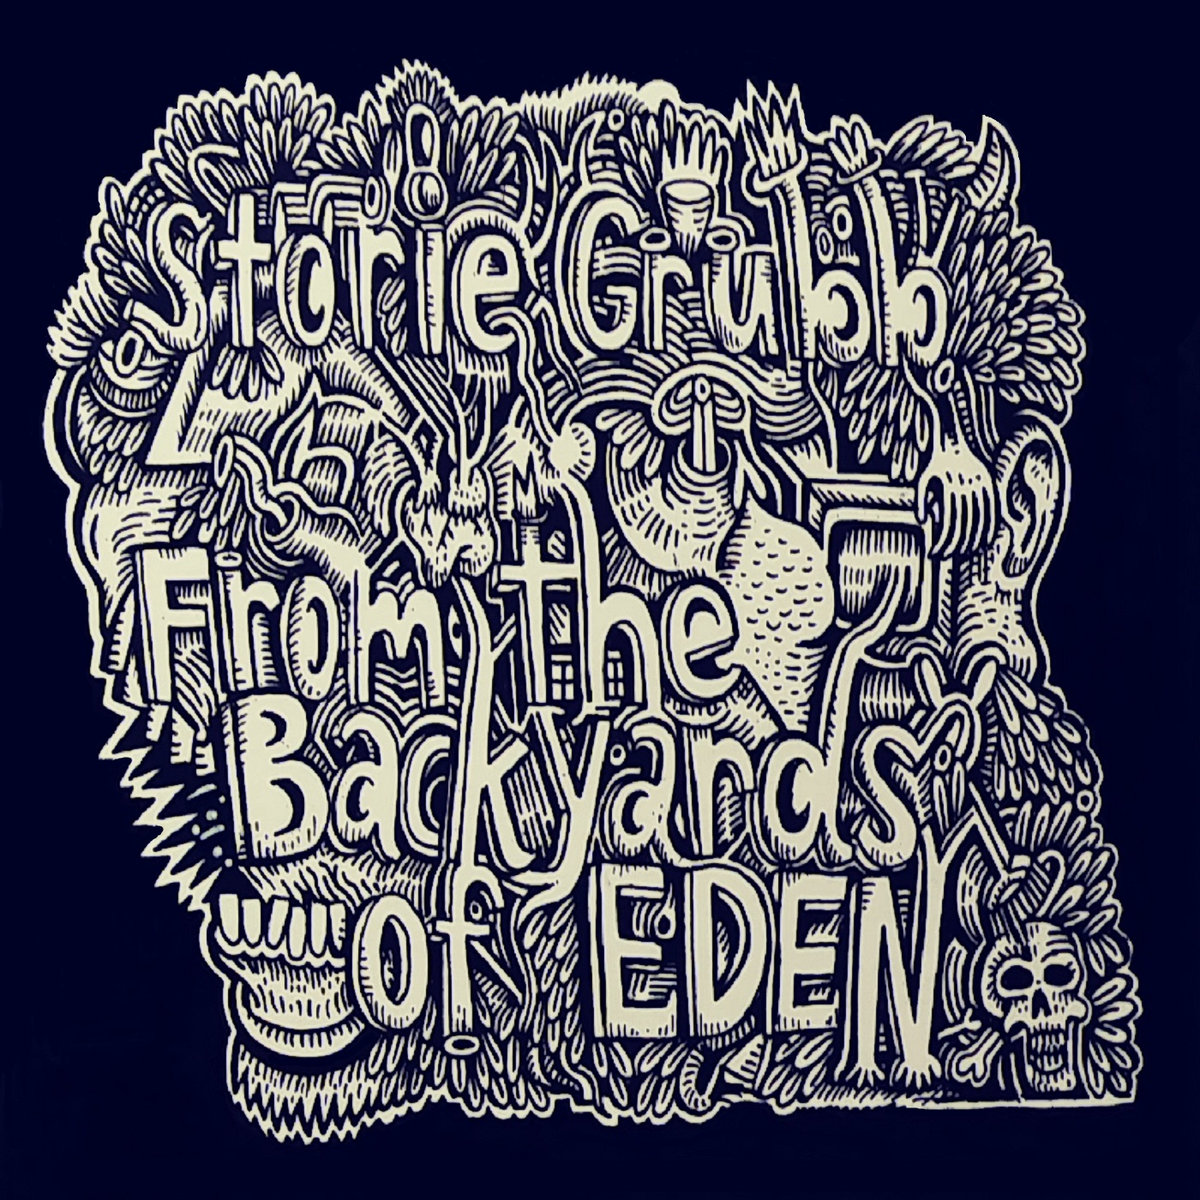 Storie Grubb - From the Backyards of Eden